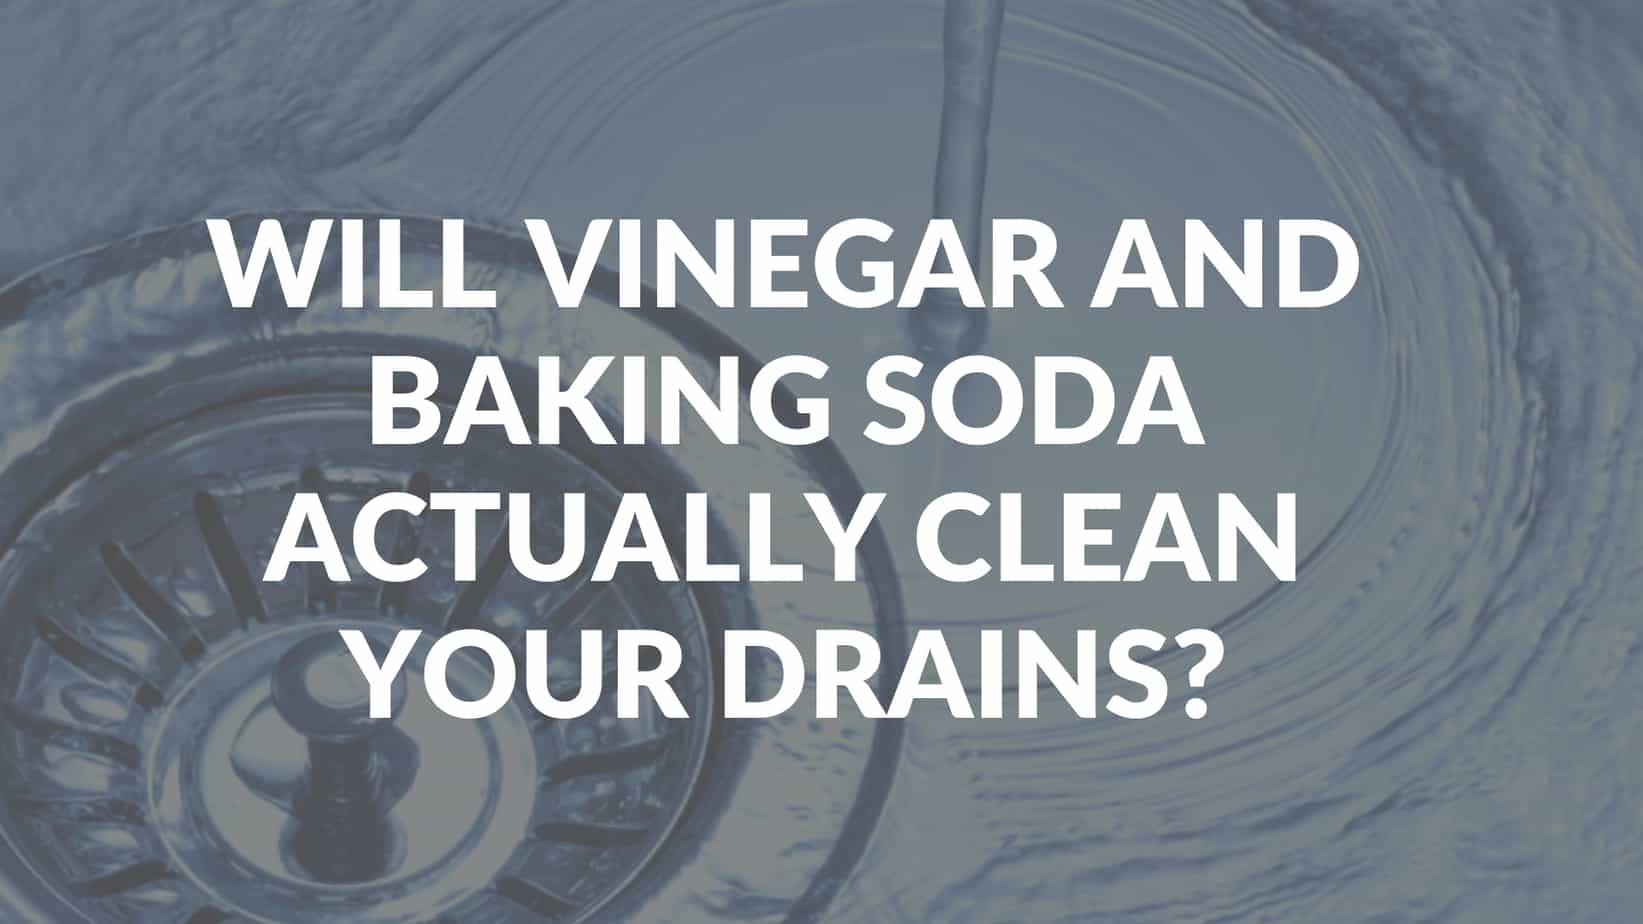 Does Vinegar and Baking Soda Actually Clean Your Drains?